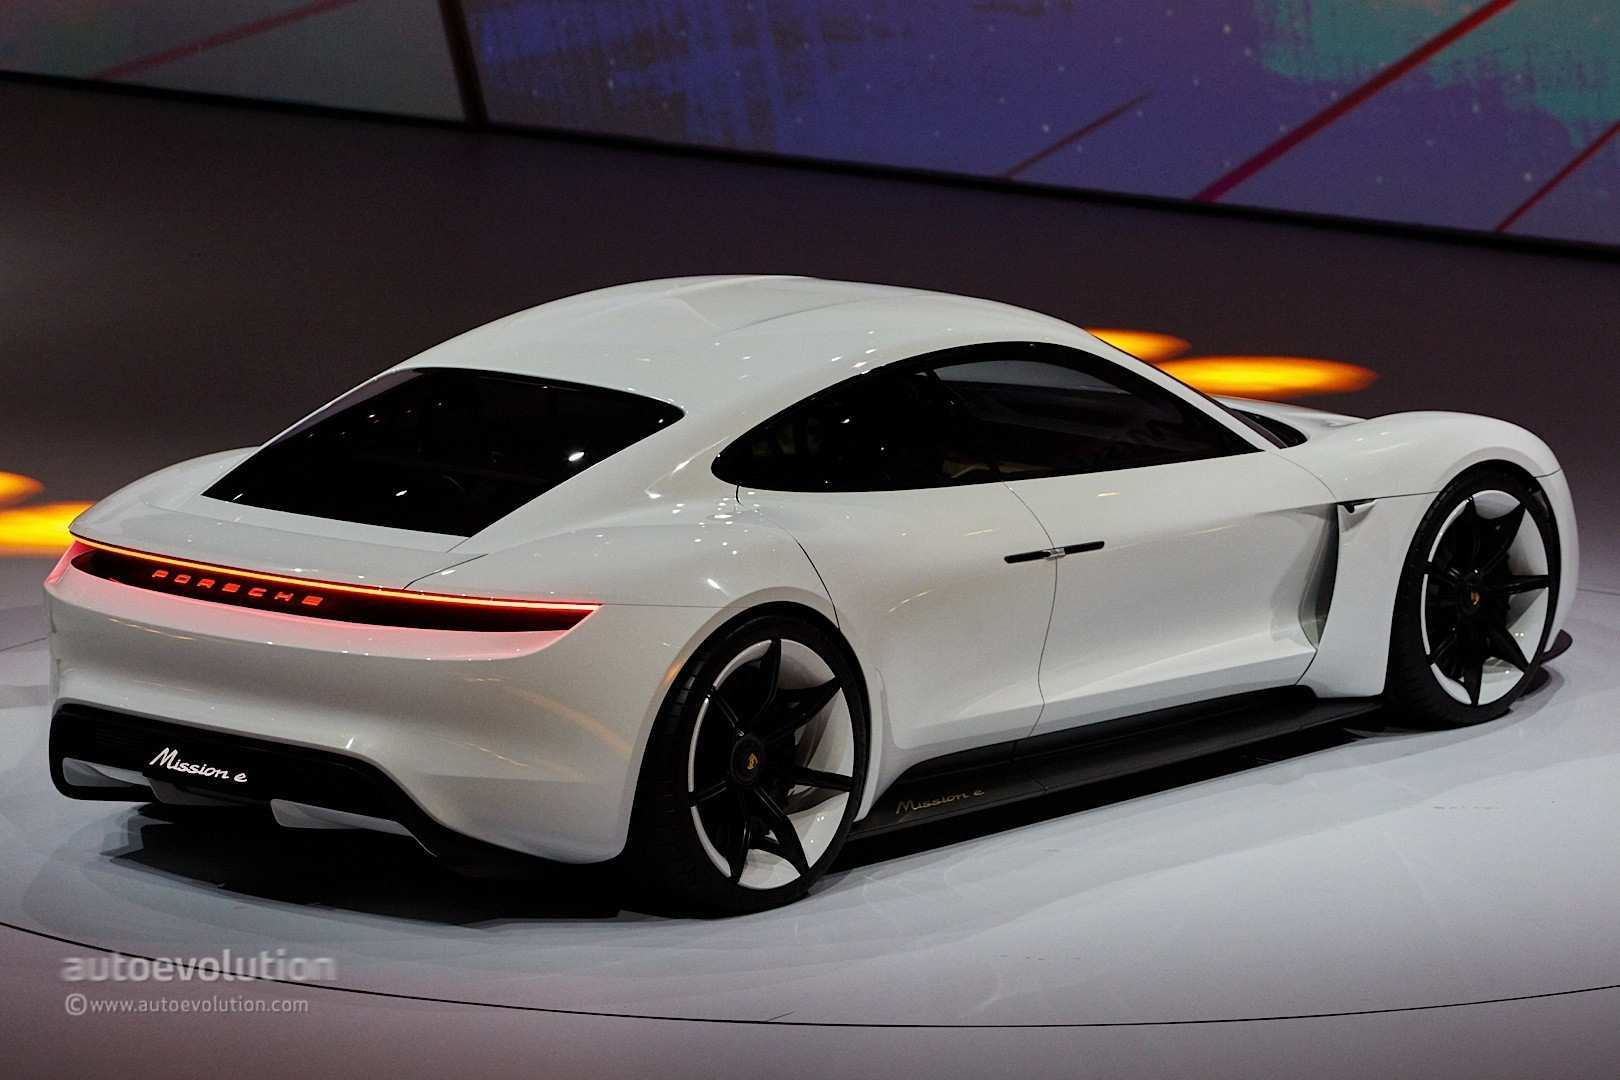 95 A 2020 Porsche Electric Car Price and Release date